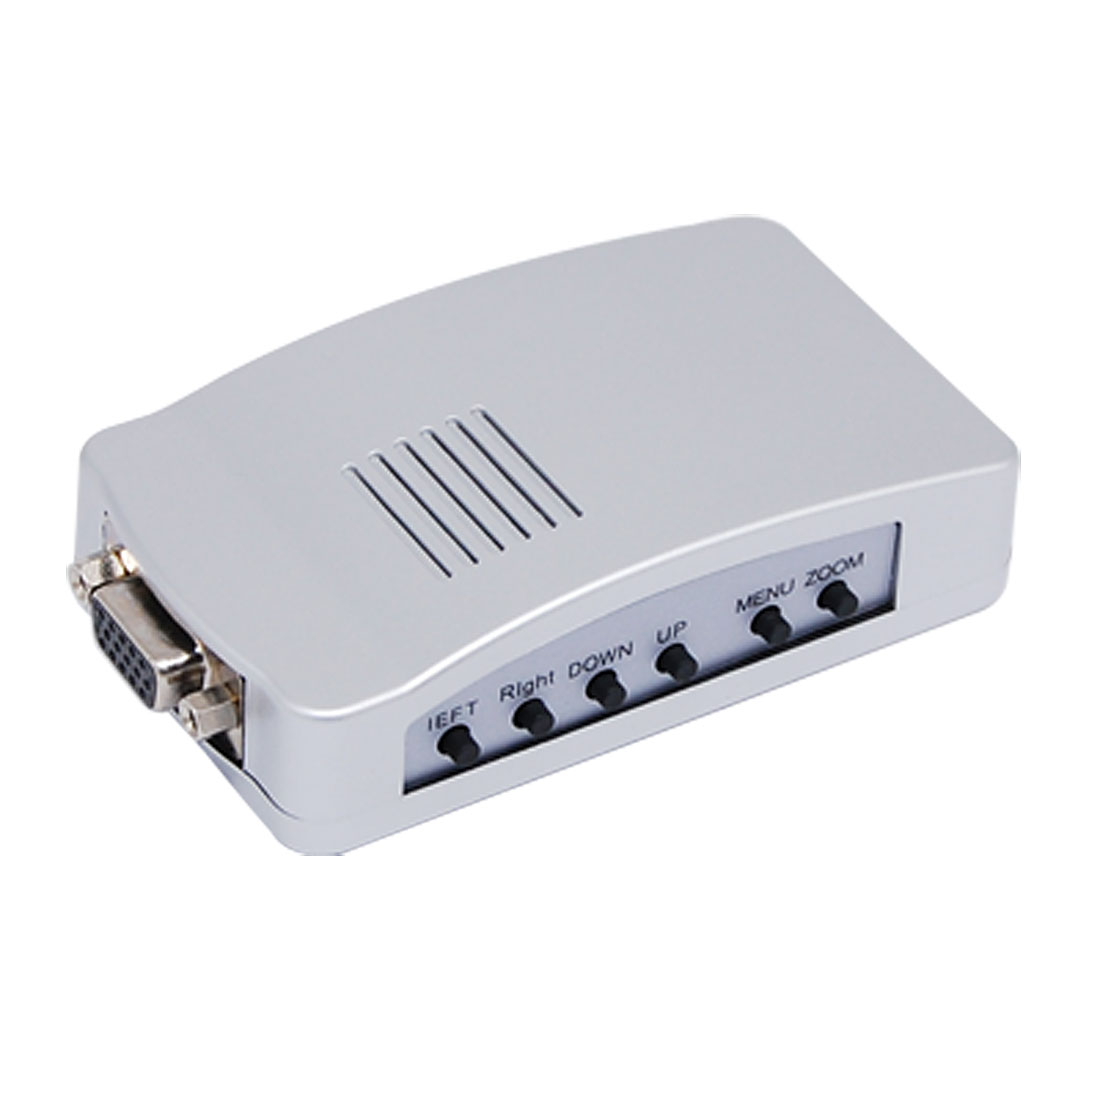 Portable PC VGA to TV Video Signal Converter Box for PC Laptop